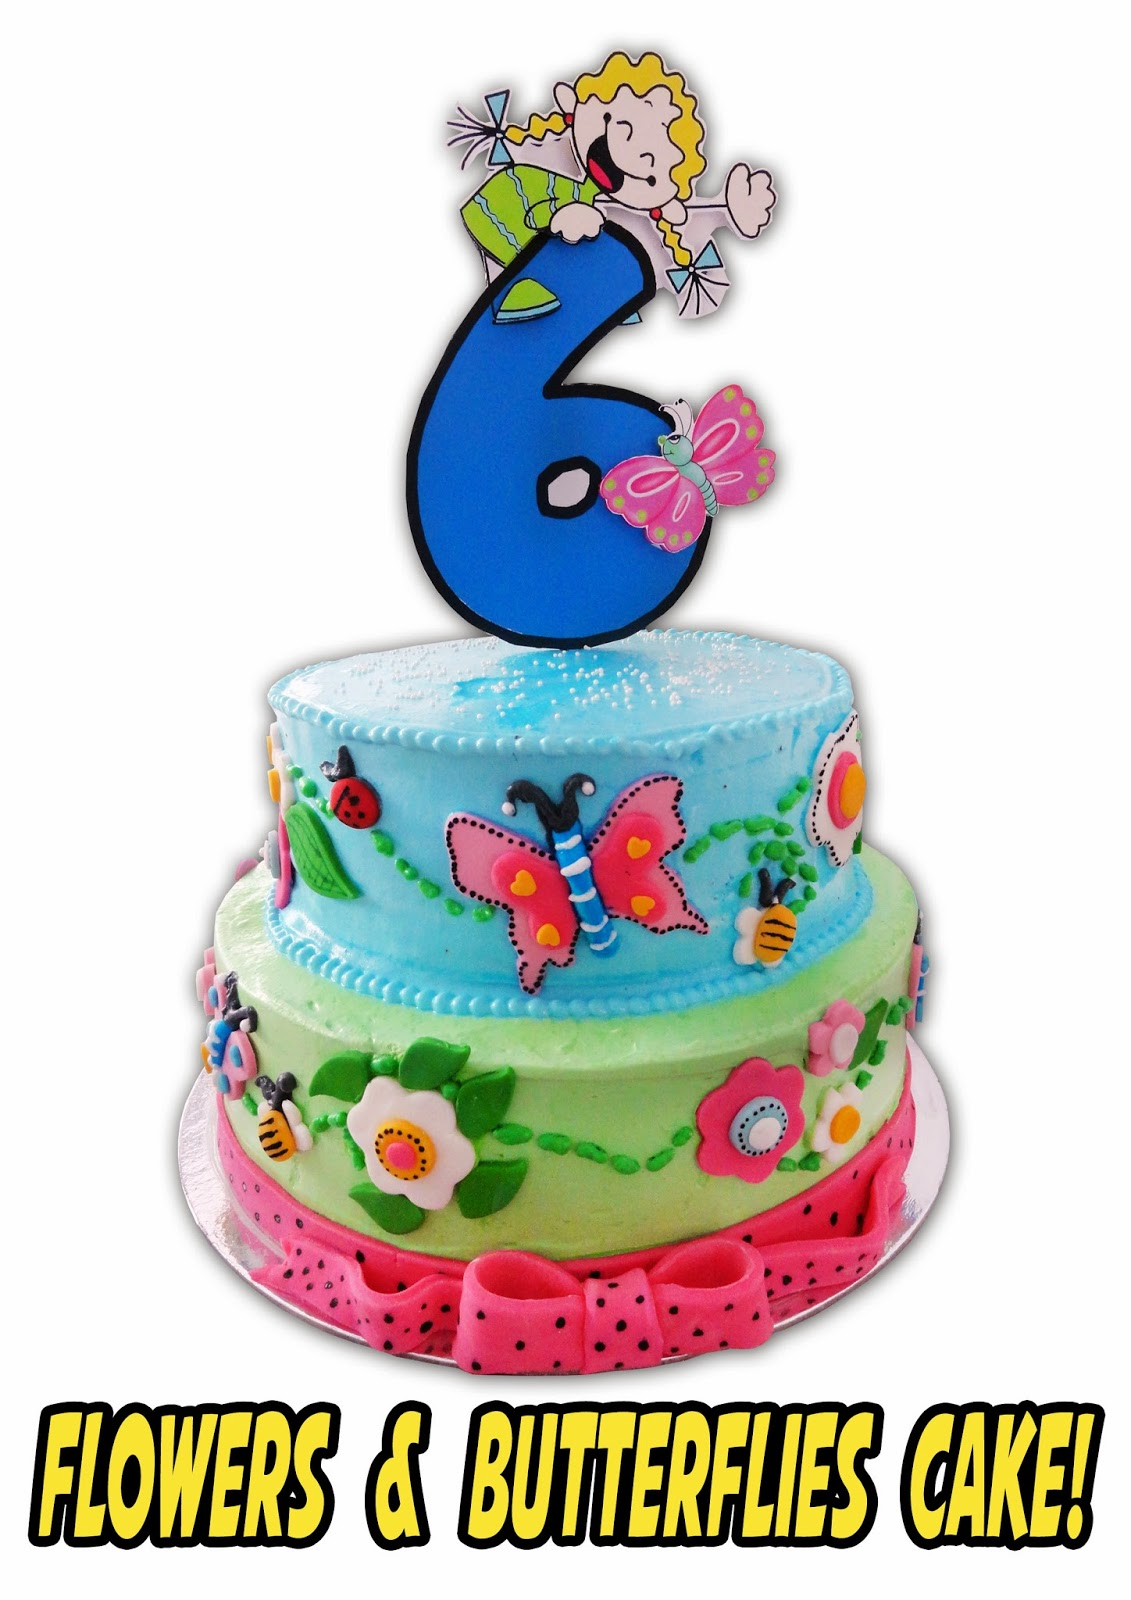 Popcakes flowers and butterflies cake flowers and butterflies cake for more info call us at 02 7106791 or send an sms to 0917 5860837 izmirmasajfo